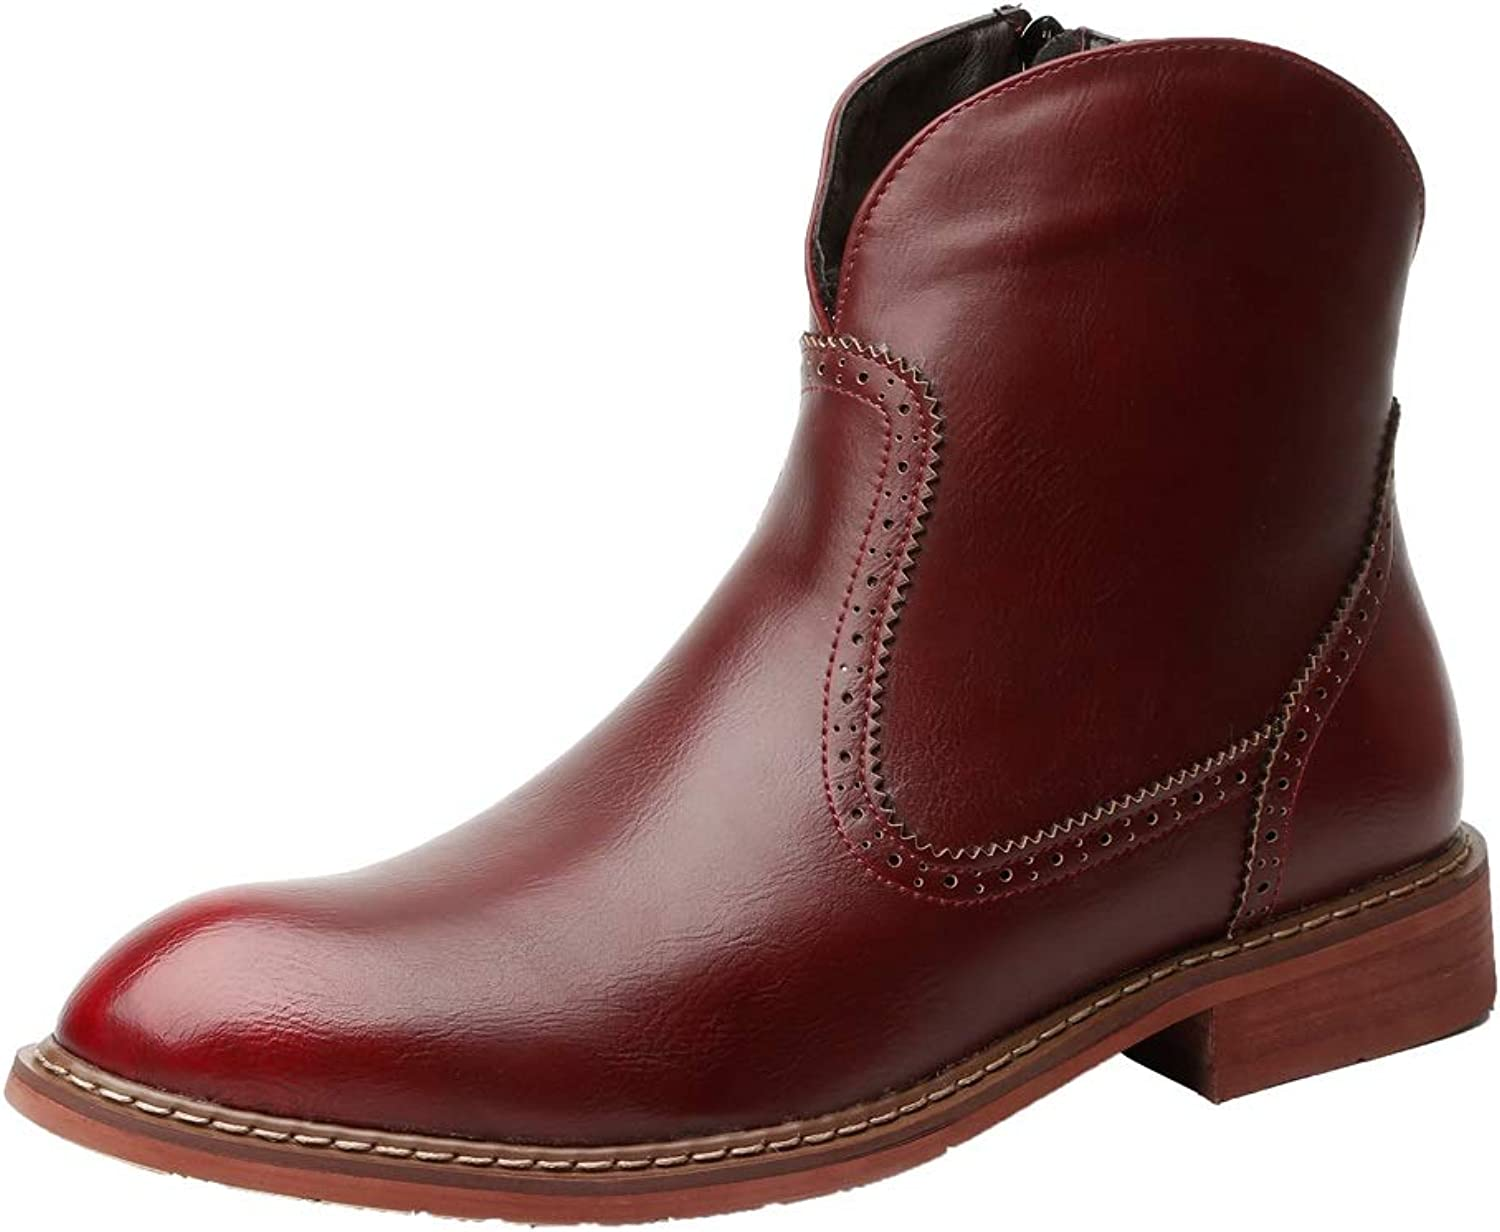 YAJIE-Boots, Men's Boots, Casual British Style Simple Anti-slip Outsole Side Zipper Popular Retro Trend Martin Boots (color   Claret Red, Size   8 UK)